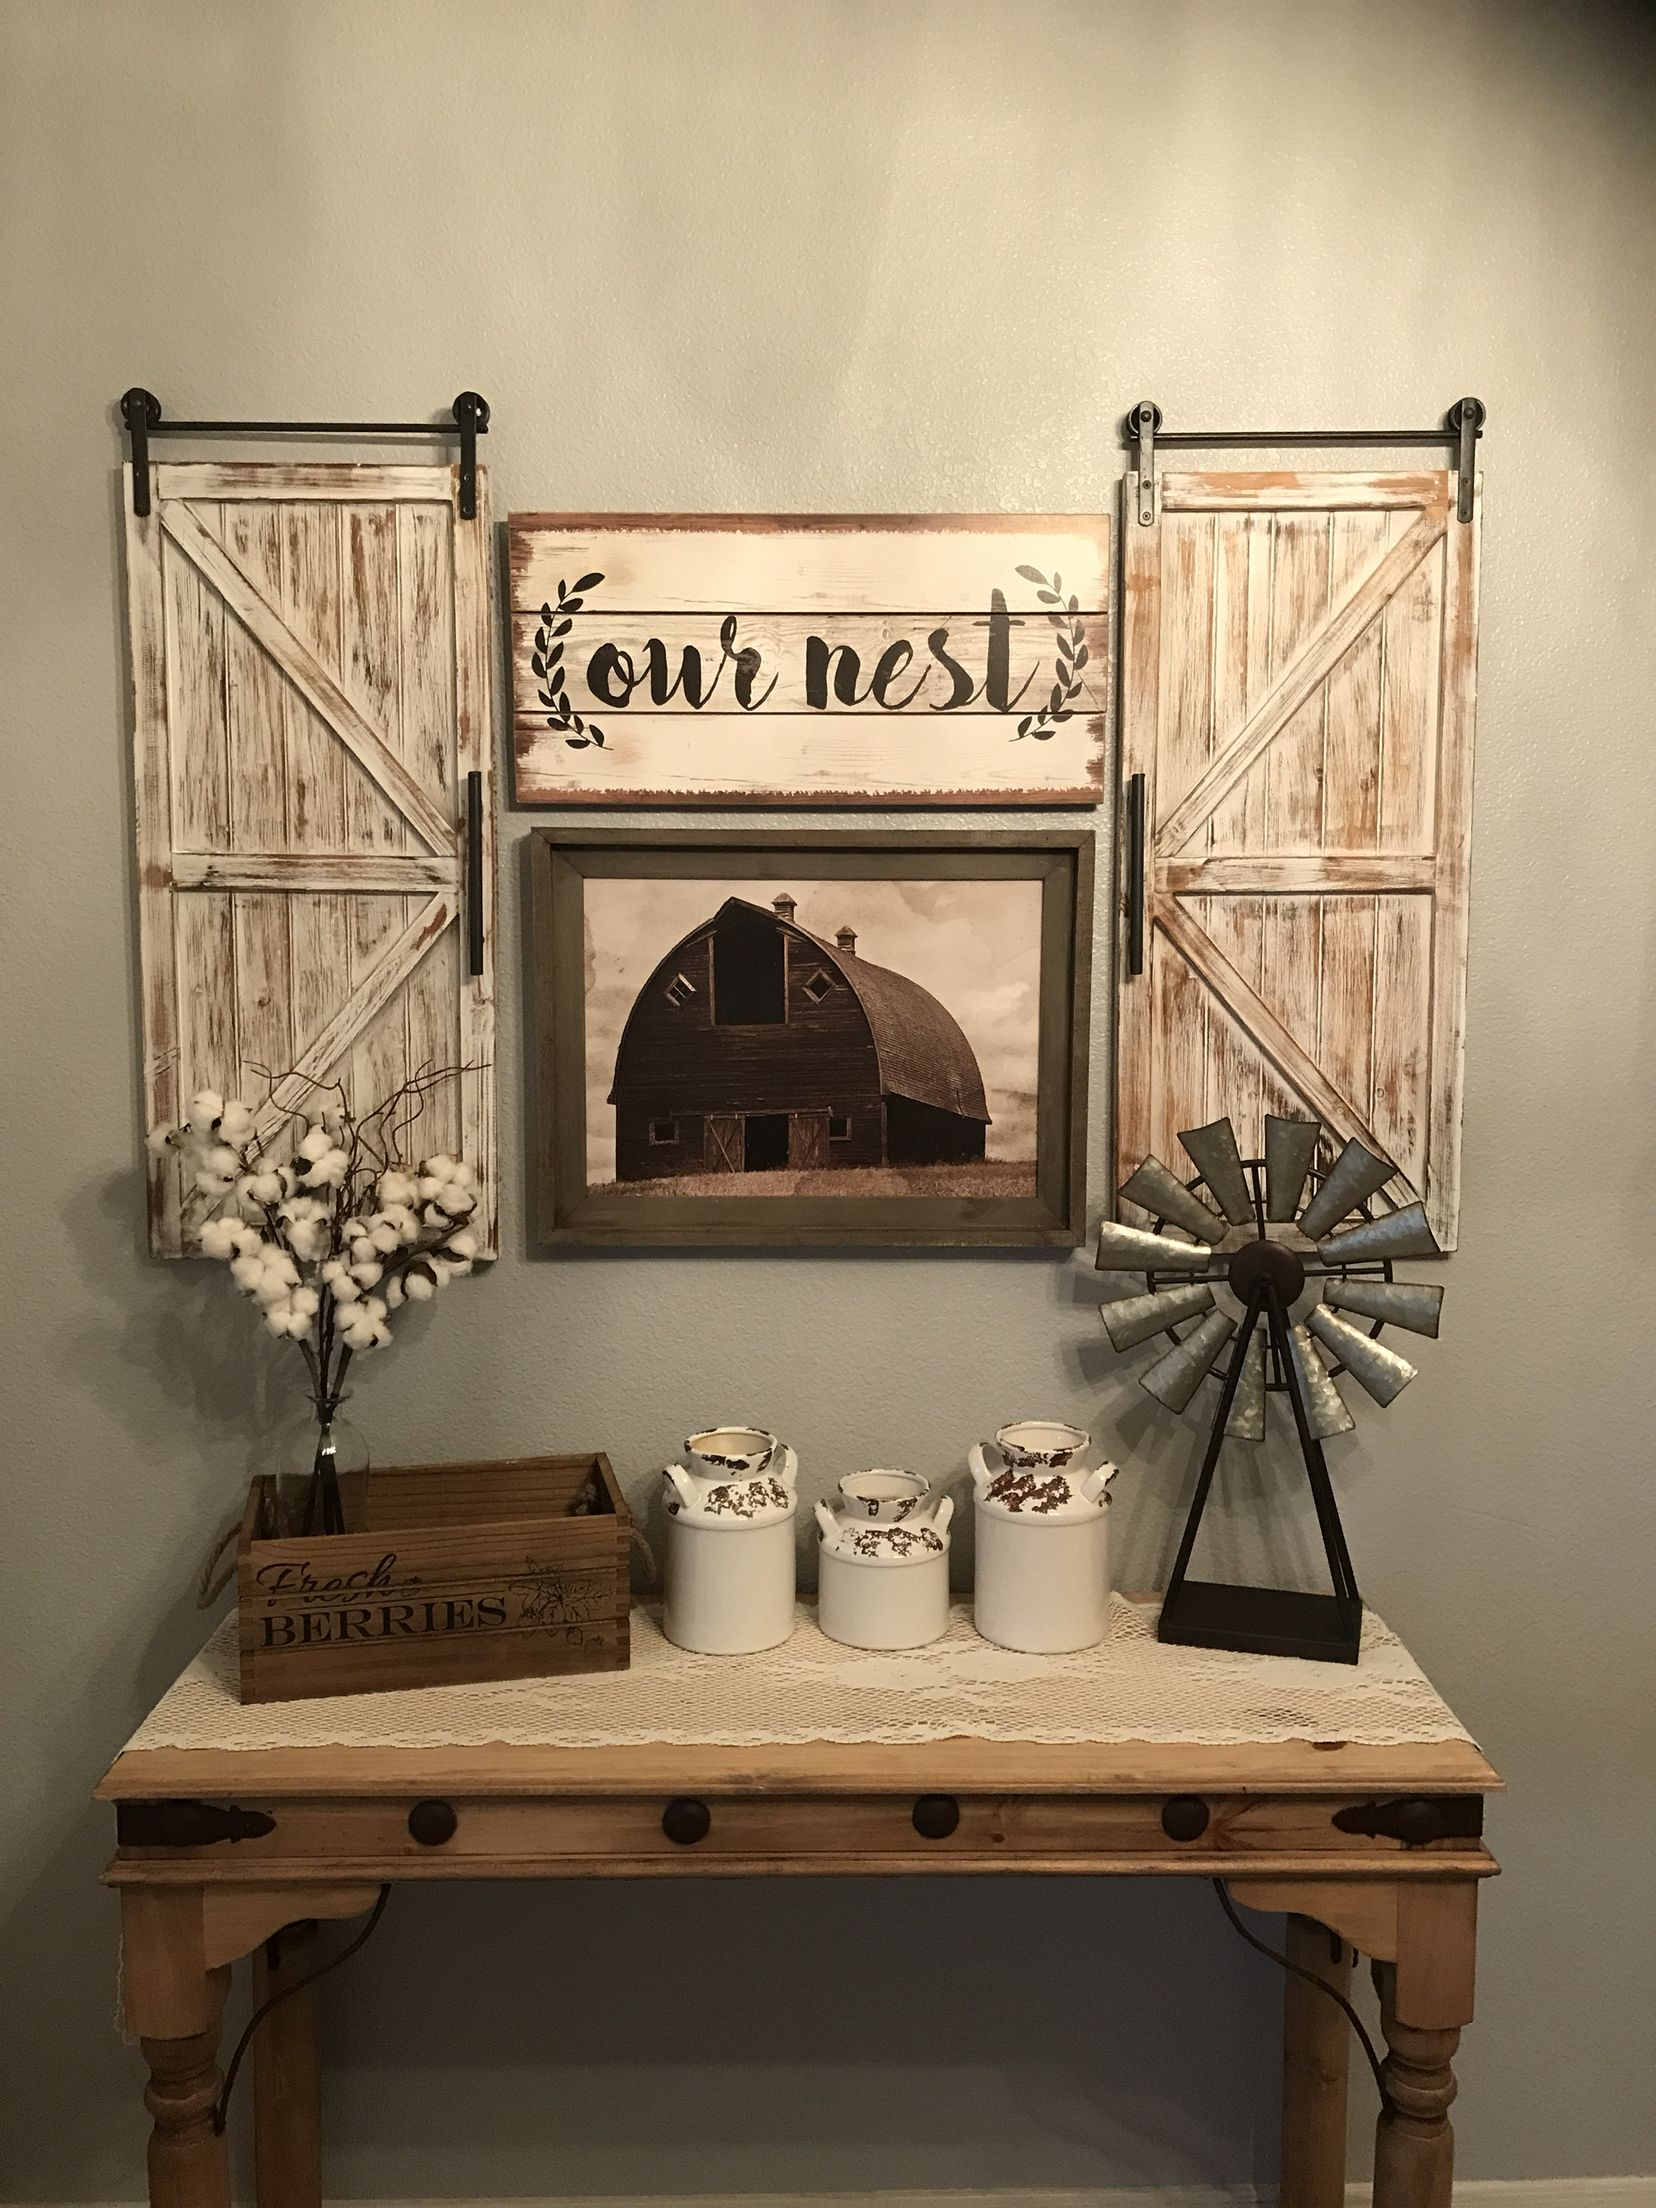 Farmhouse Kitchen Decor Farmhouse Farmhousedecor Chipandjo Barndoors Barn Wi Living Room Decor Rustic Rustic Farmhouse Living Room Farm House Living Room